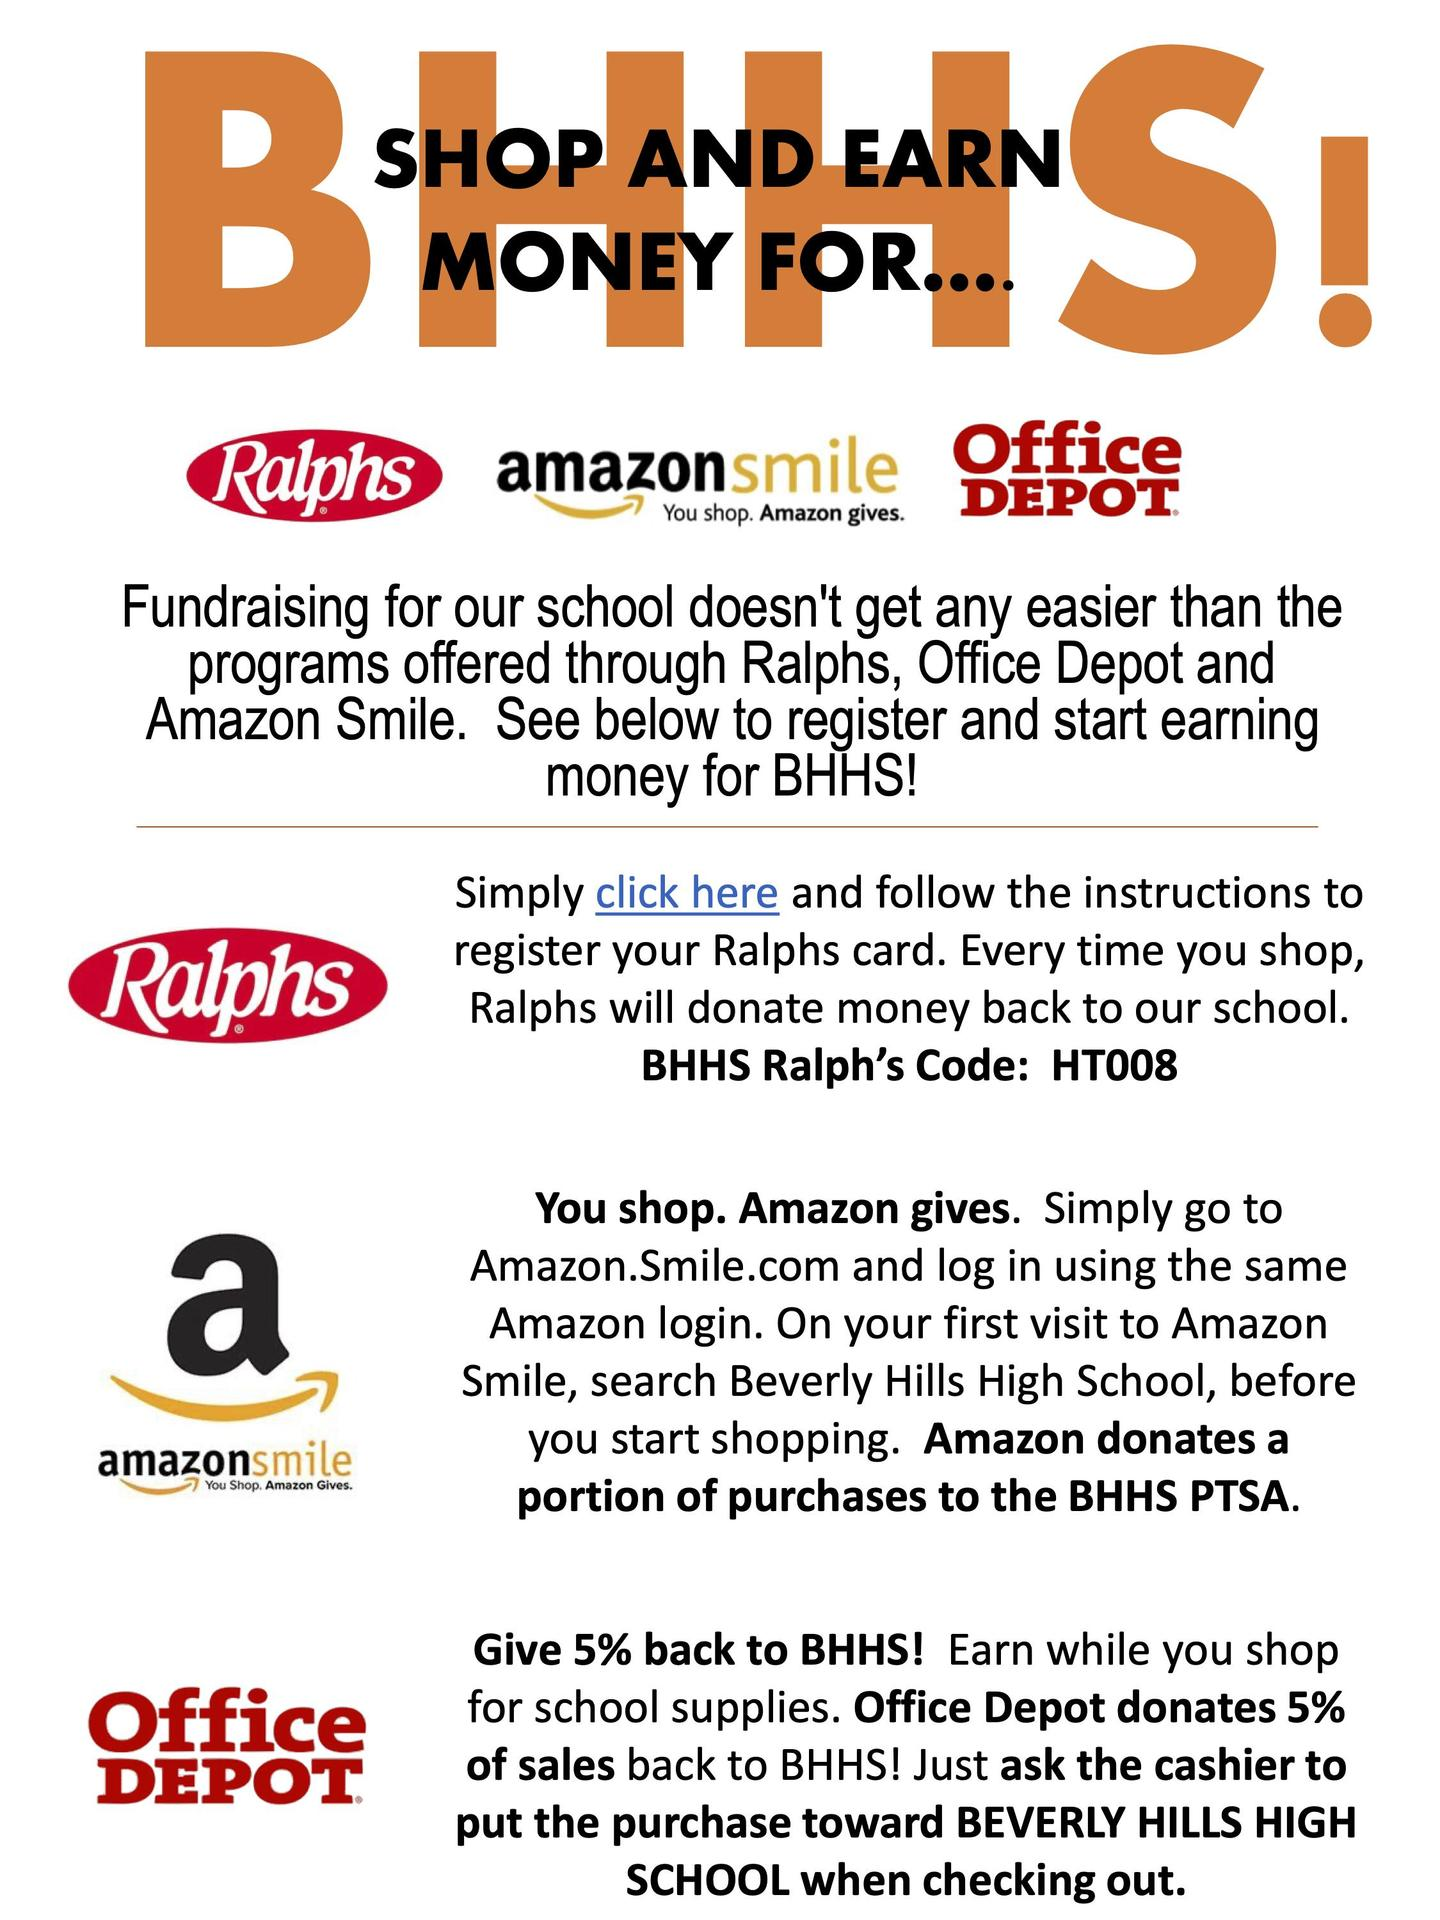 Shop & Earn! Ralphs, Amazon (via Amazon.Smile.com) & Office Depot